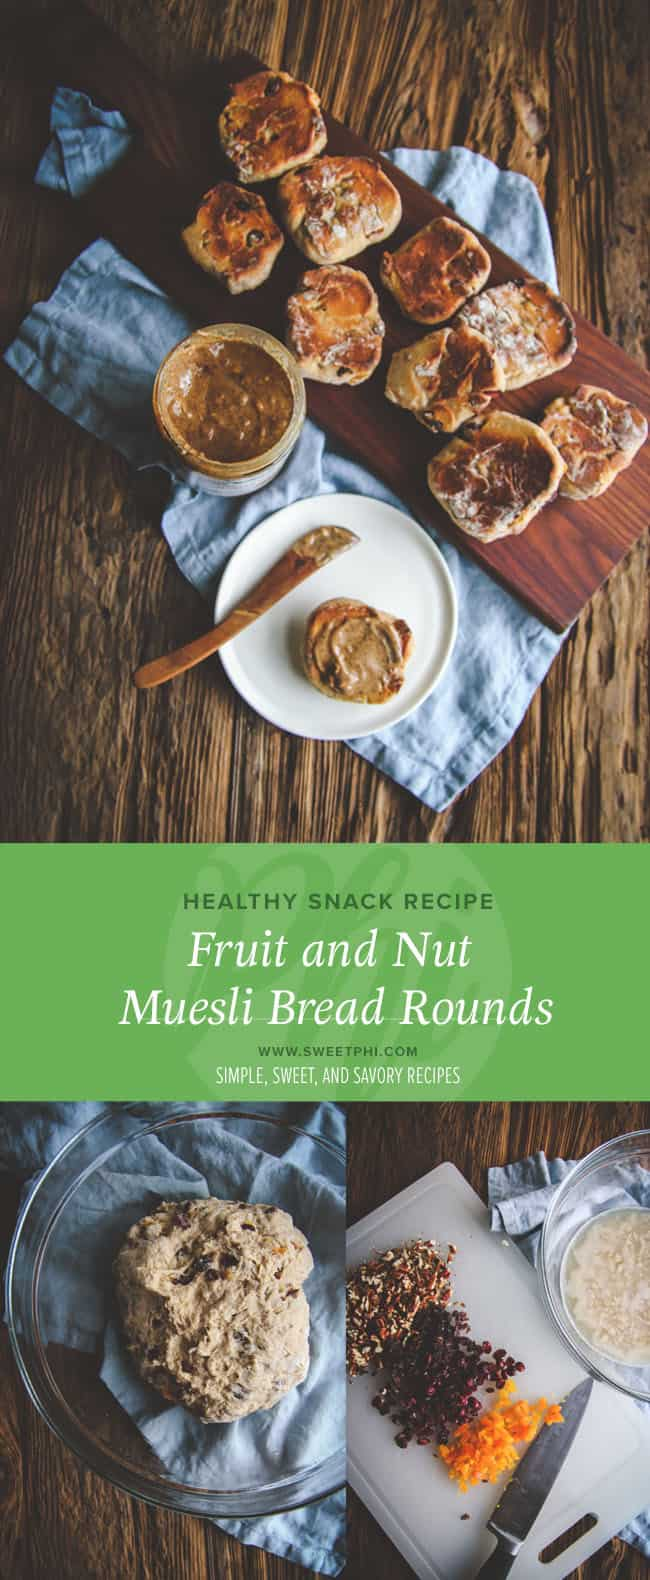 Fruit and nut muesli bread rounds are a great recipe to use when trying to replicate a Starbucks protein box! Also great for a quick, healthy snack